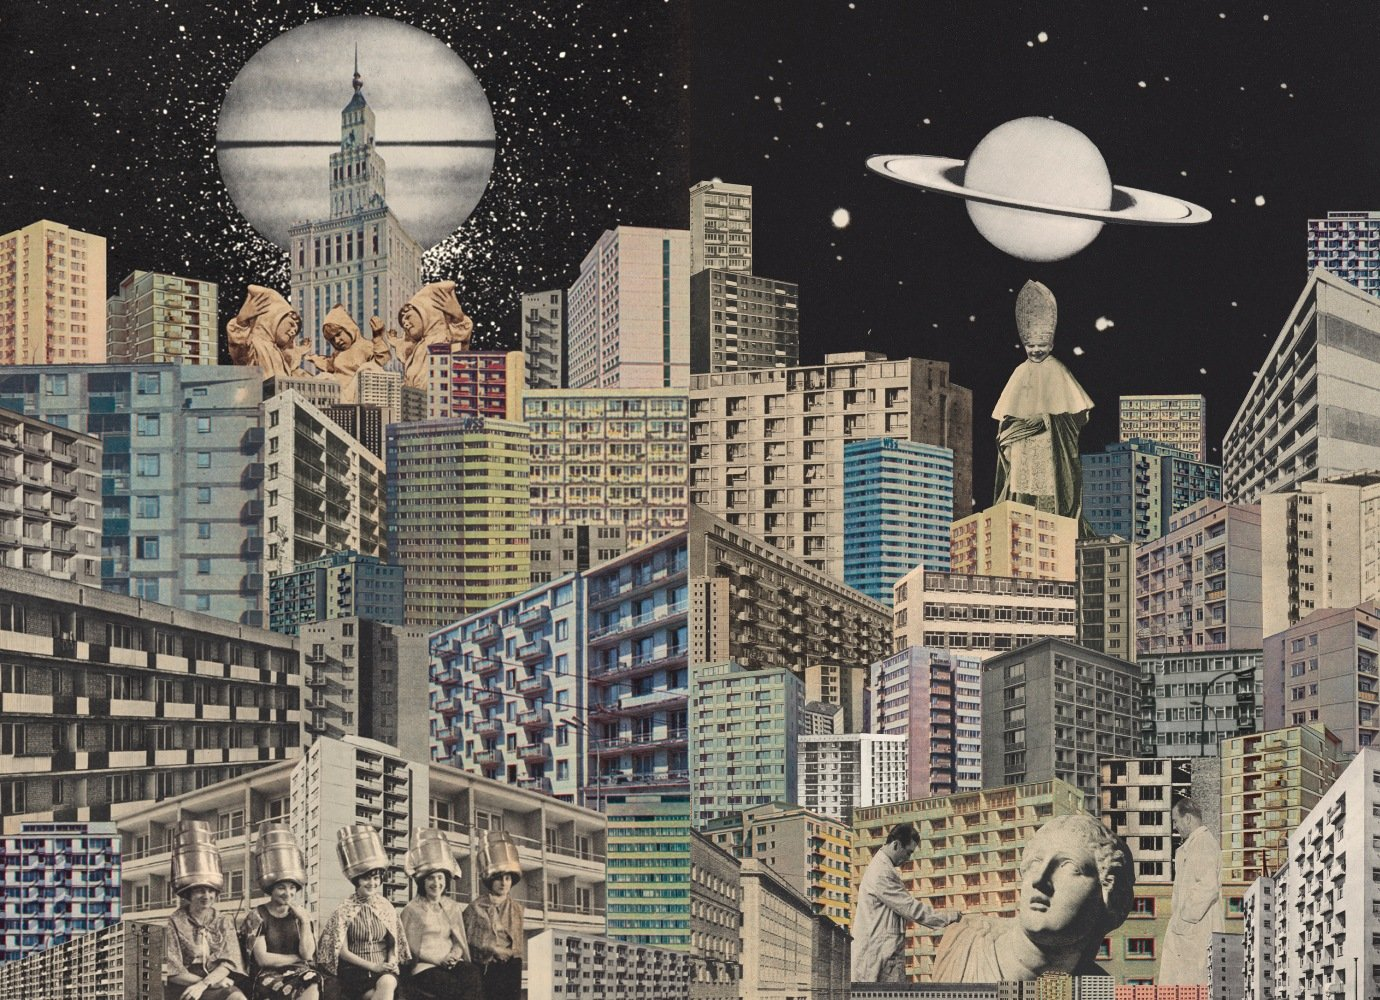 Radical ideas vs concrete realities: enter the surreal urban world of these dystopian collages